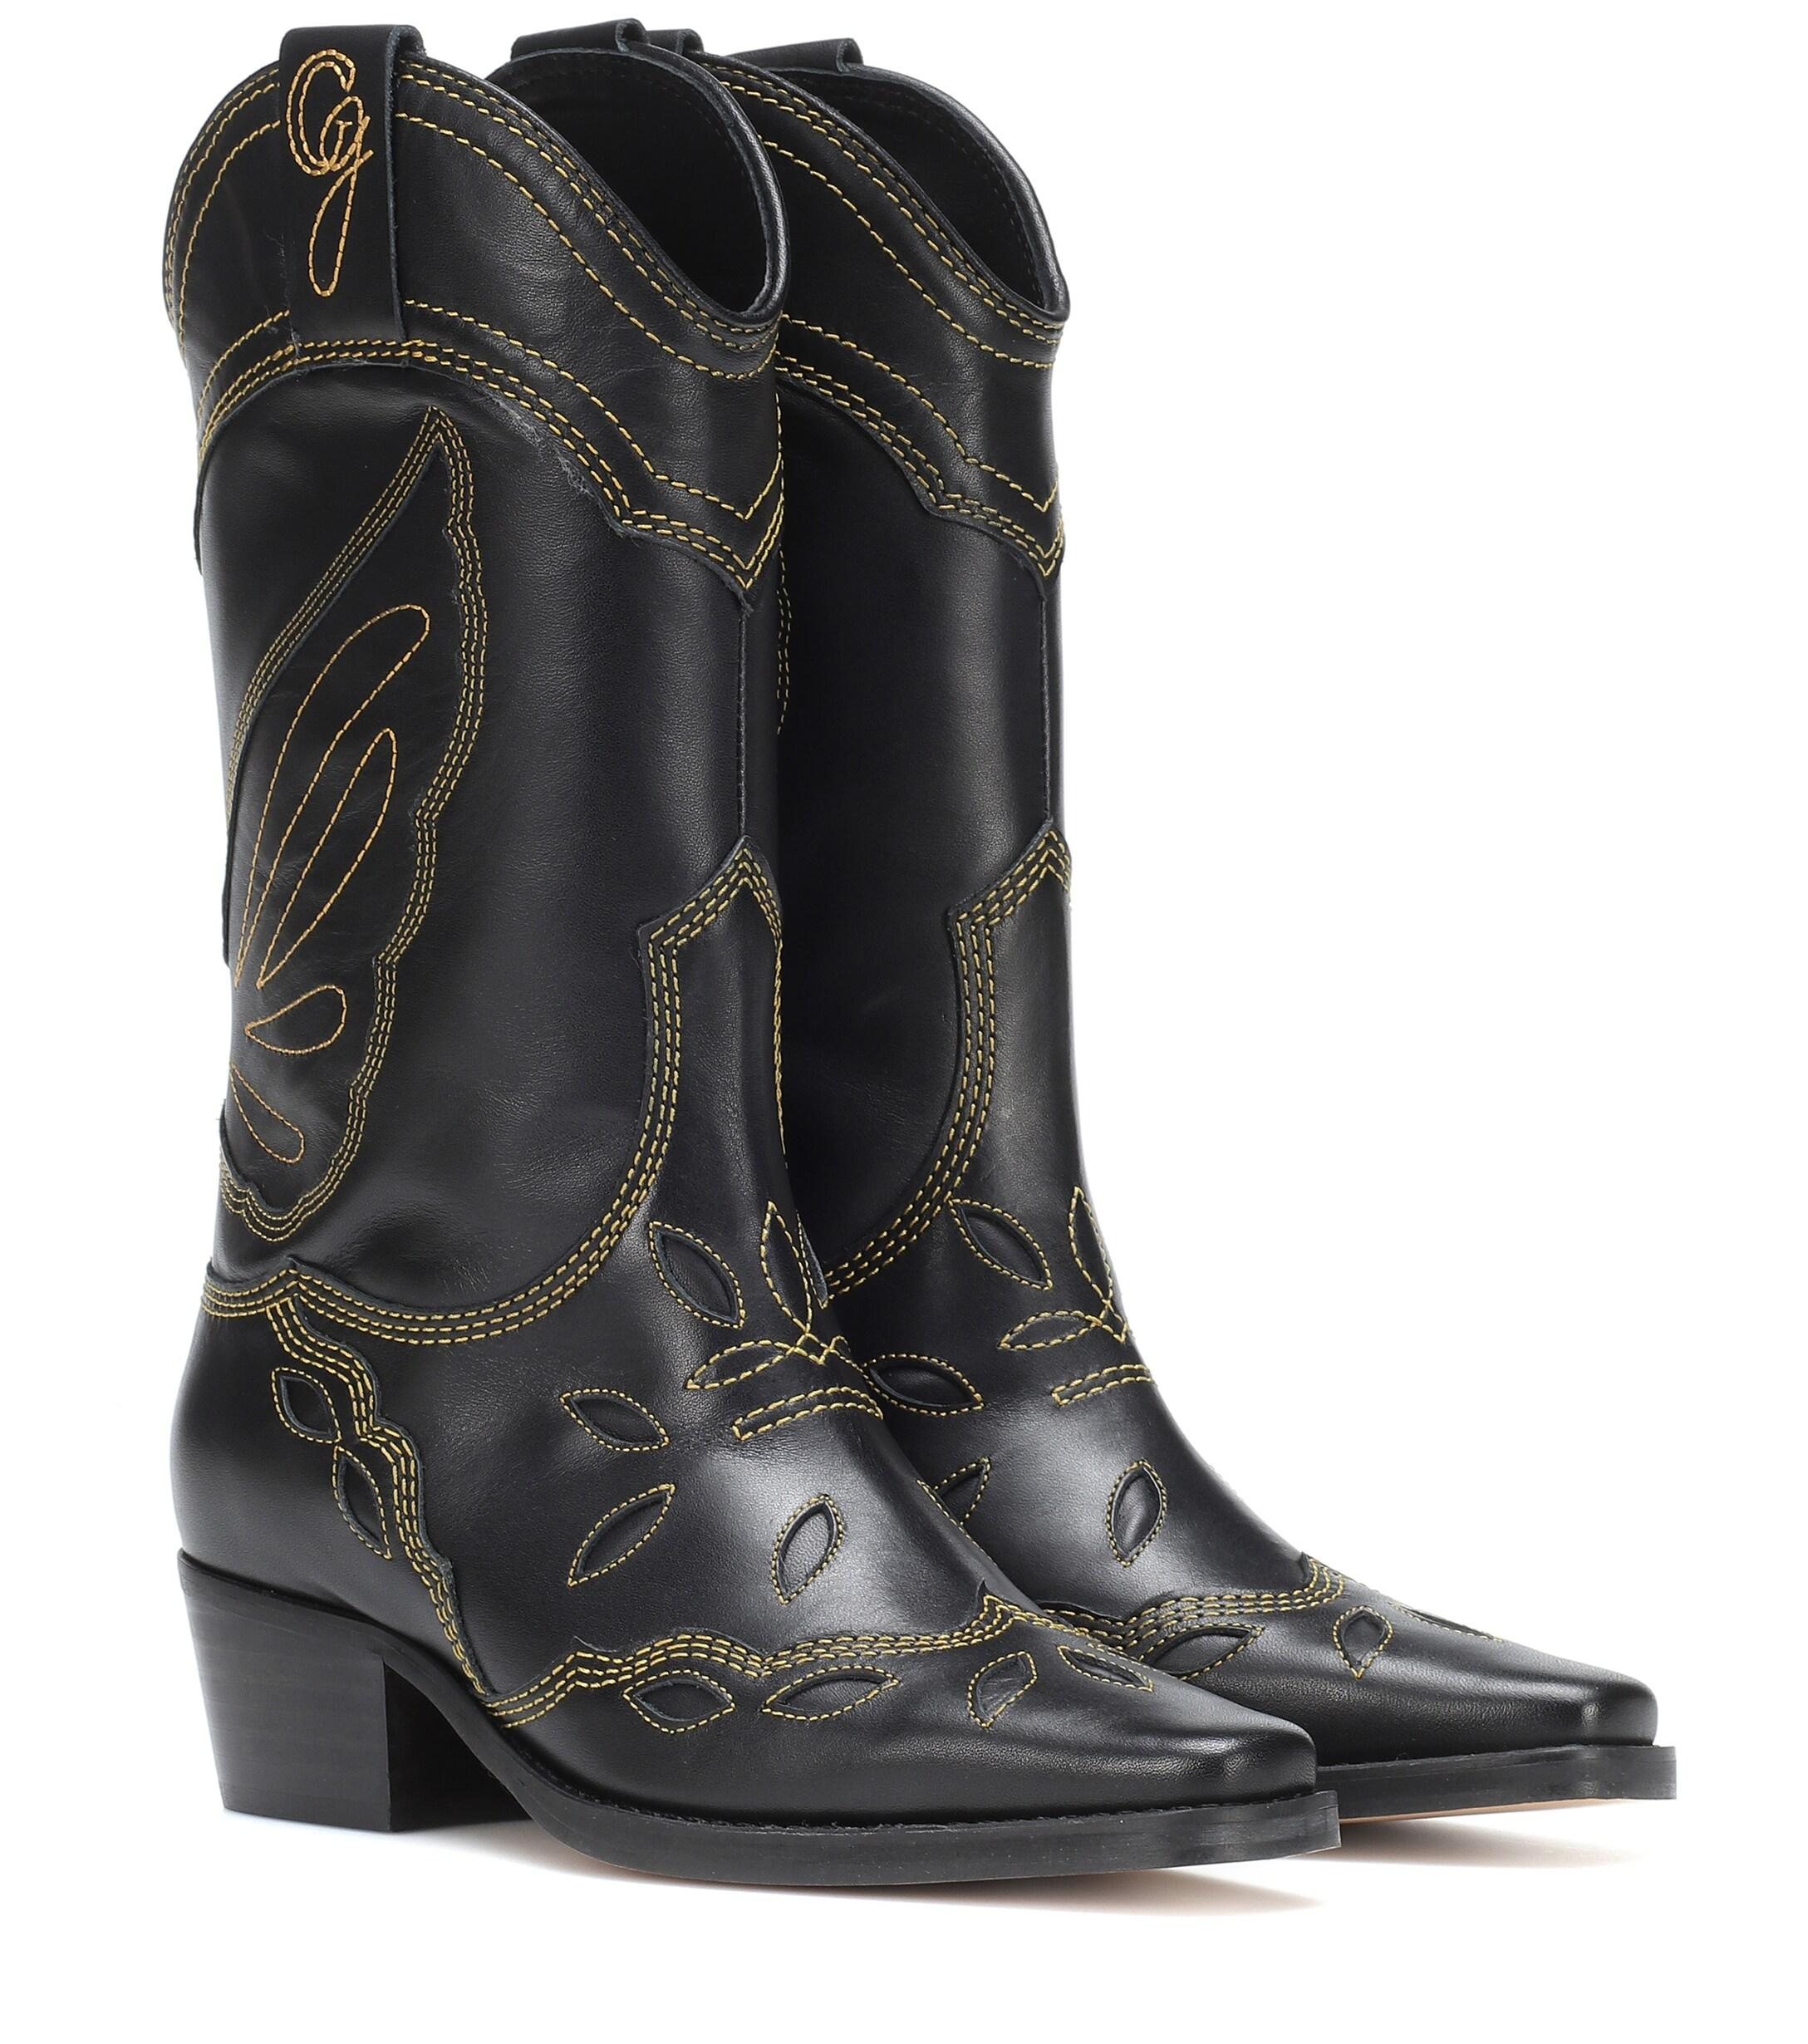 Ganni Black Leather Texas Boots Lyst